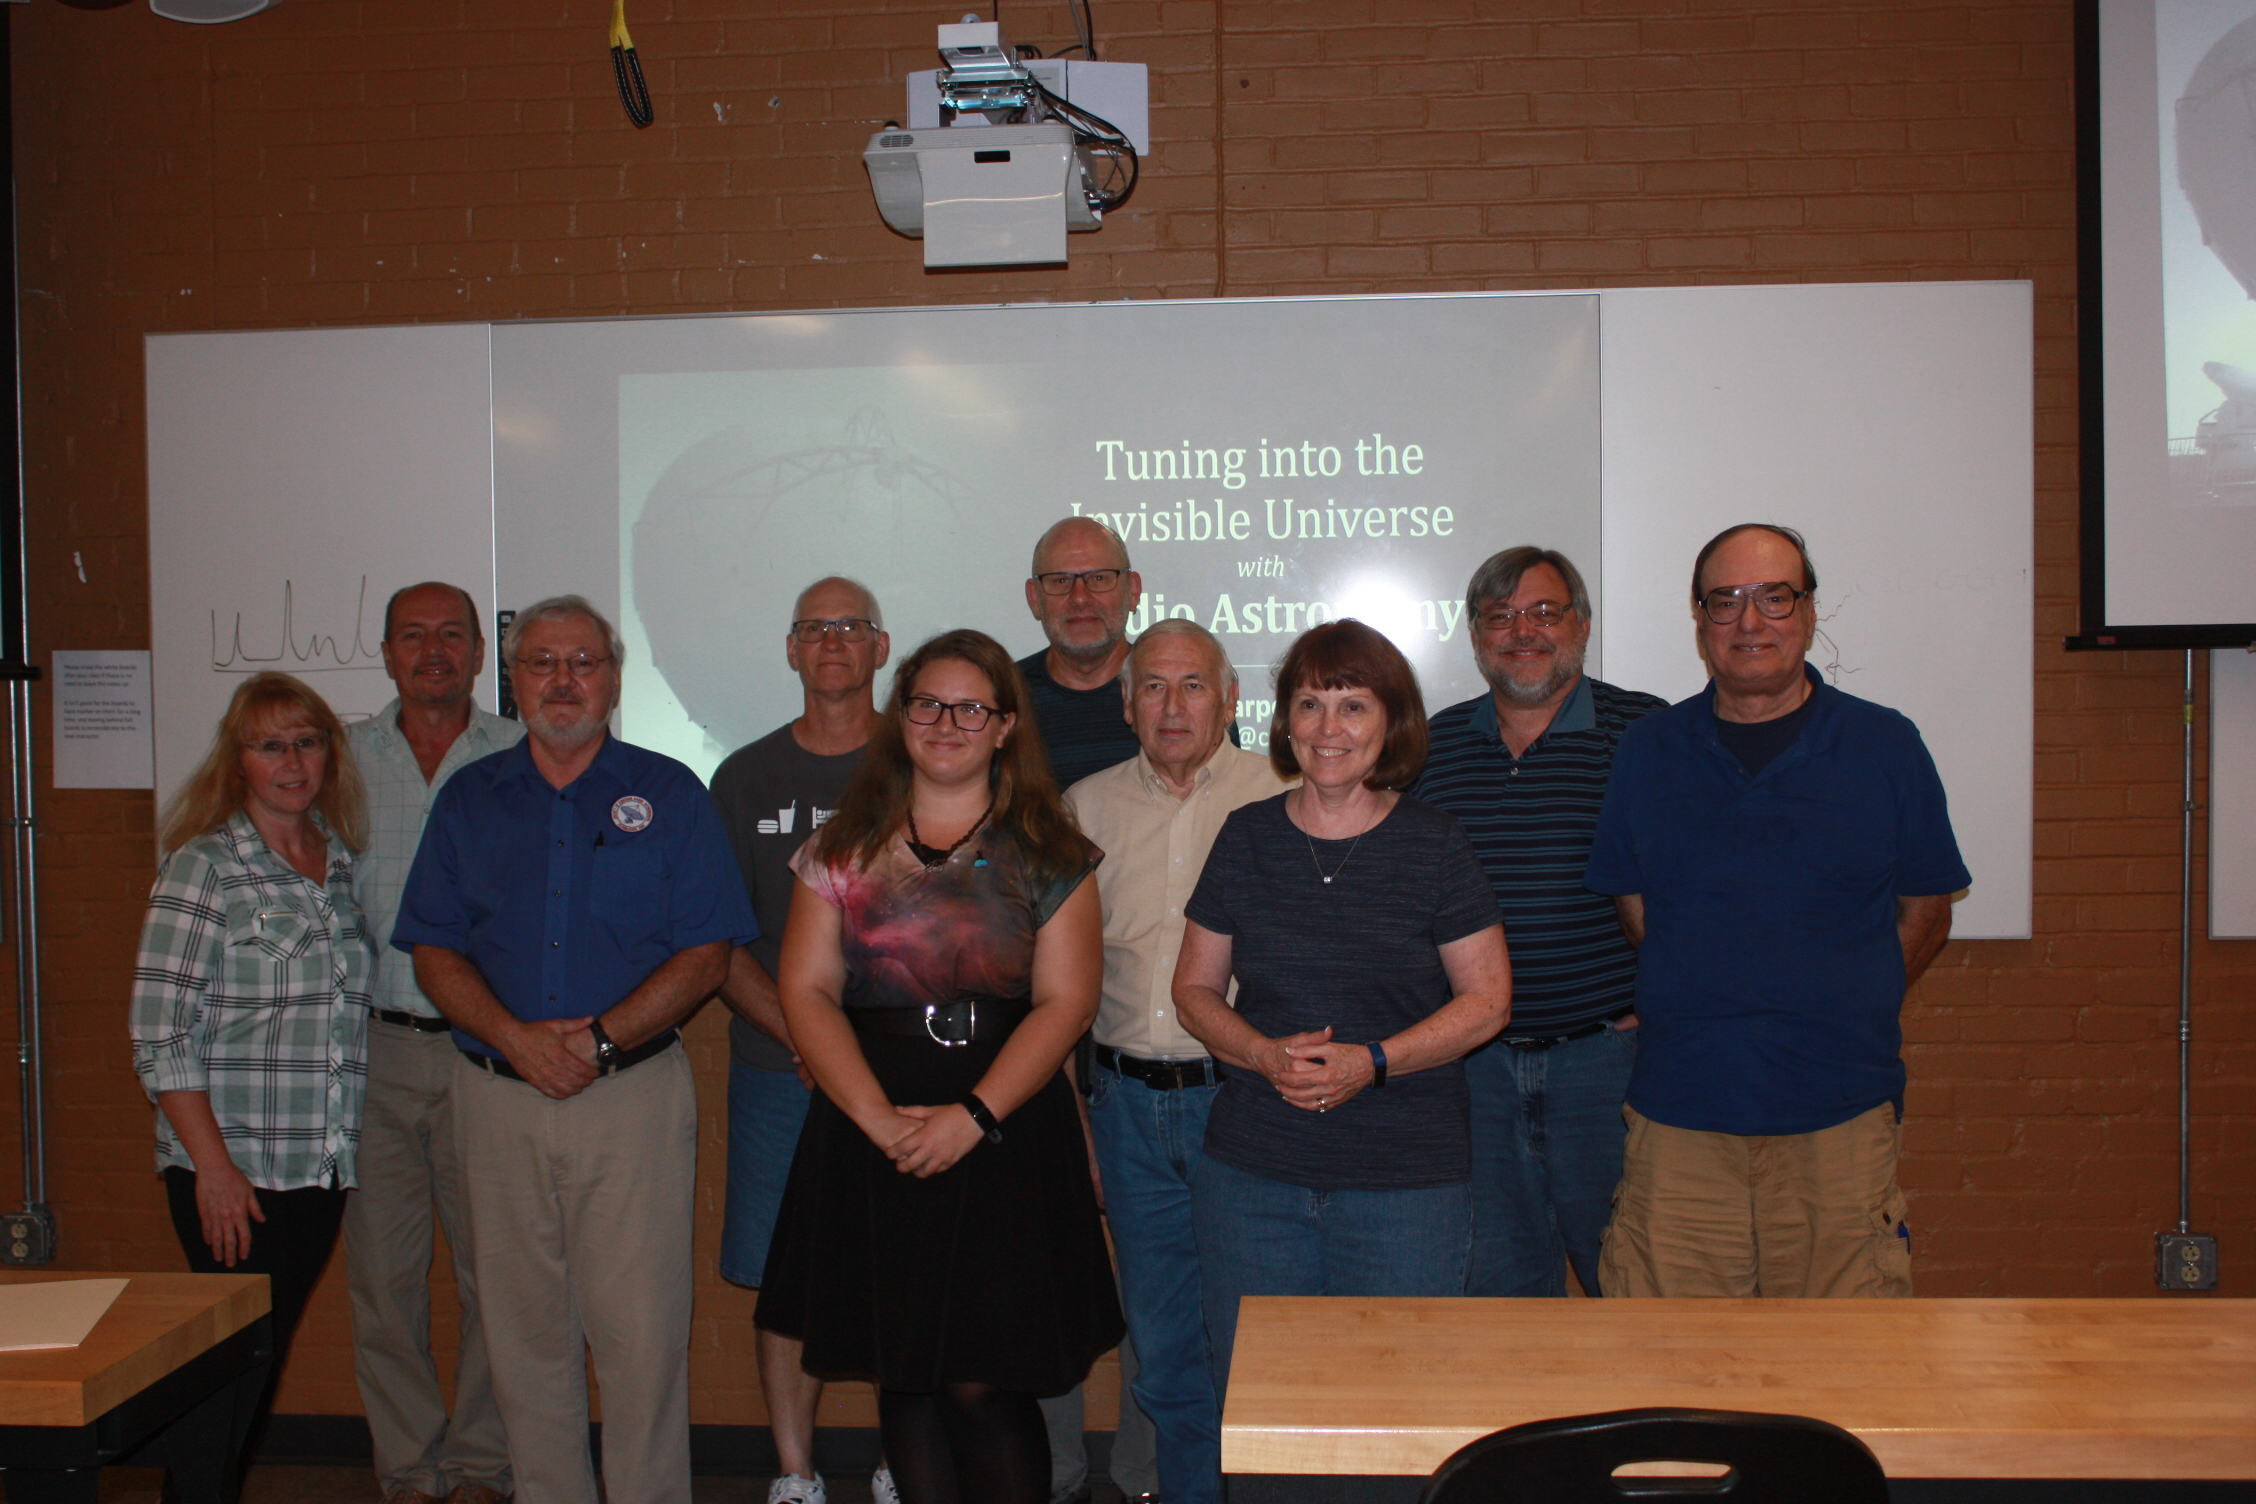 Me posing with the York County Astronomical Society after my public talk about radio astronomy on September 20, 2018.